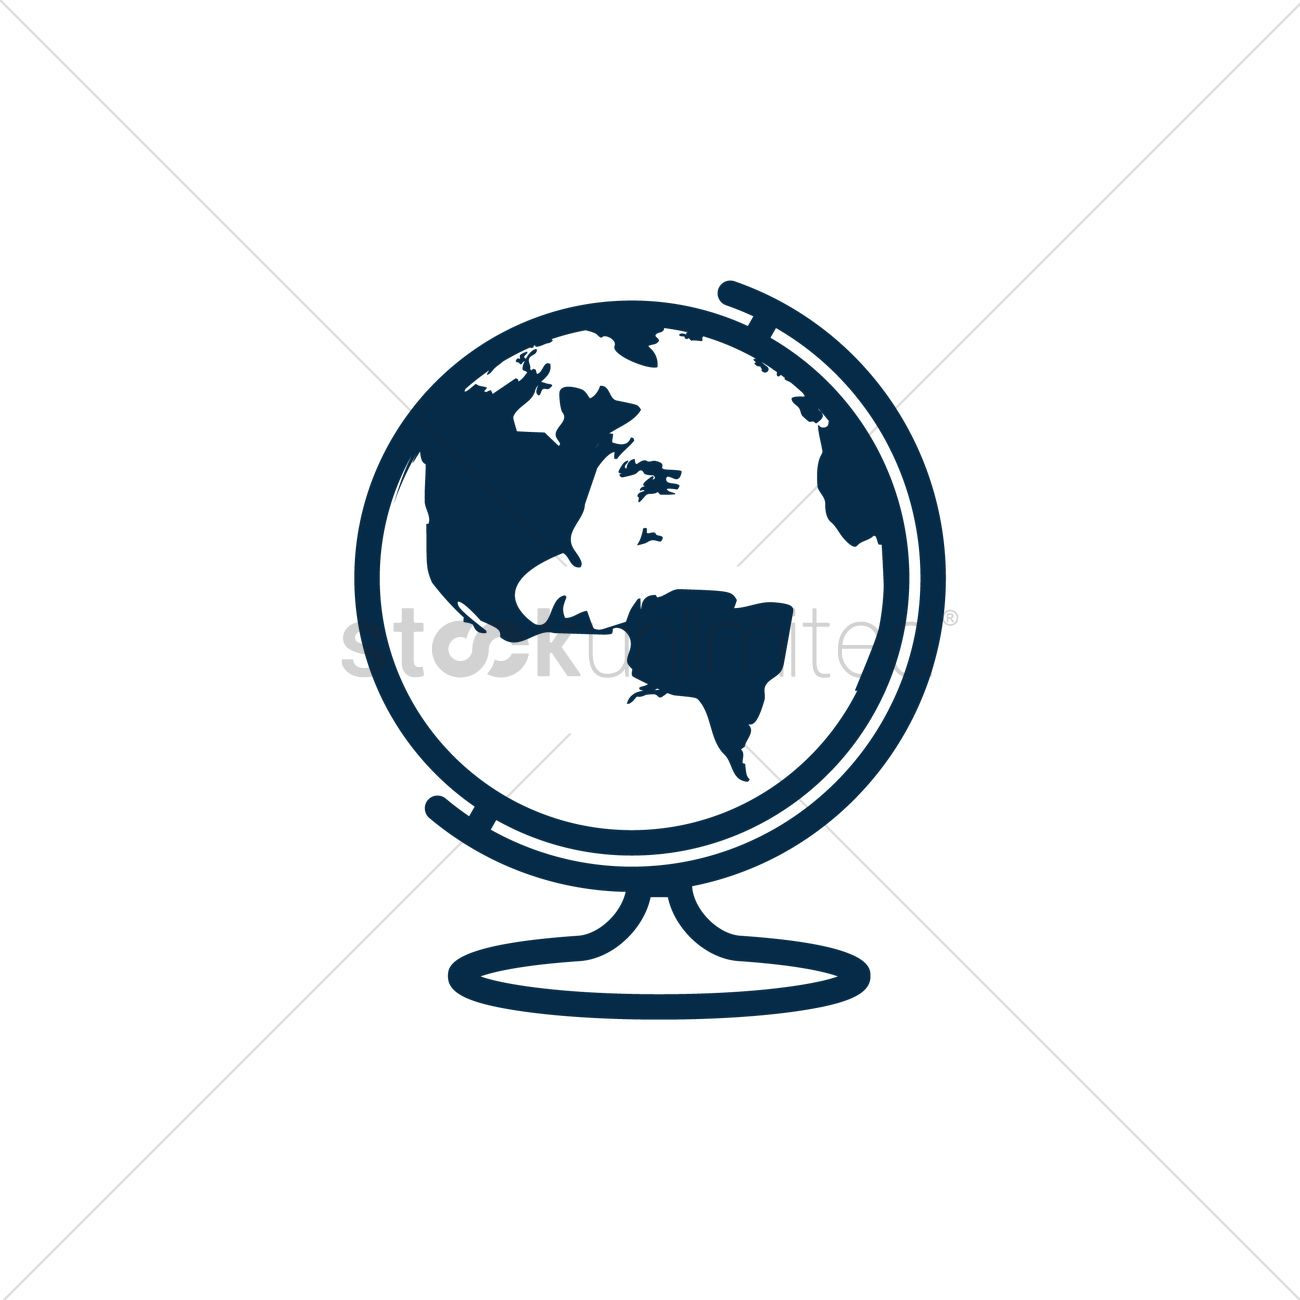 1300x1300 Desk Globe Vector Image